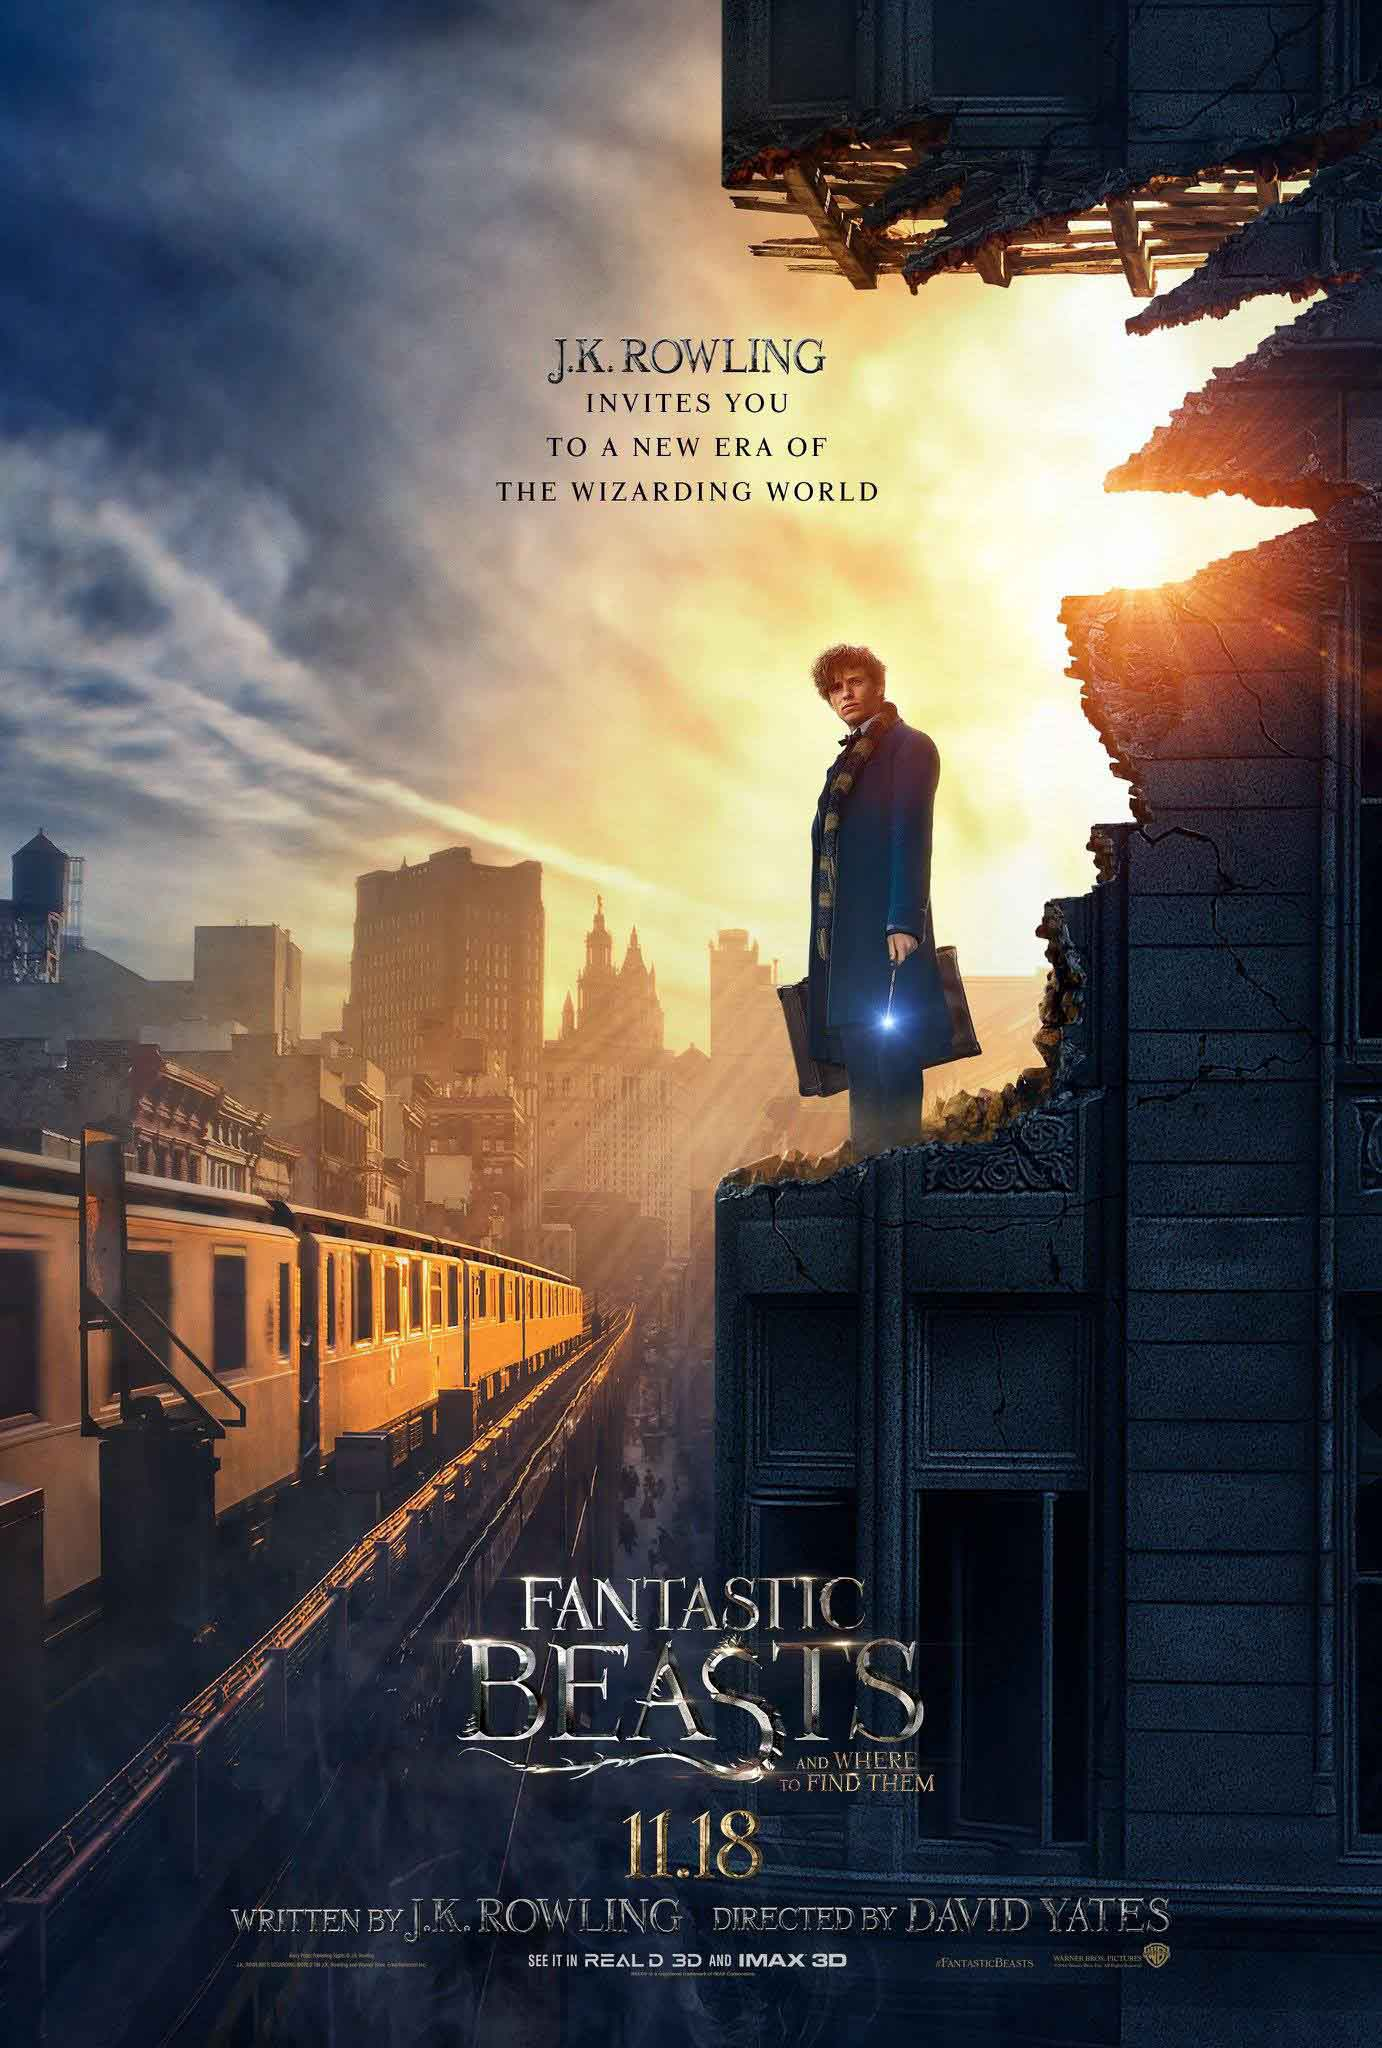 دانلود فیلم هری پاتر 2016 | Fantastic Beasts and Where to Find Them